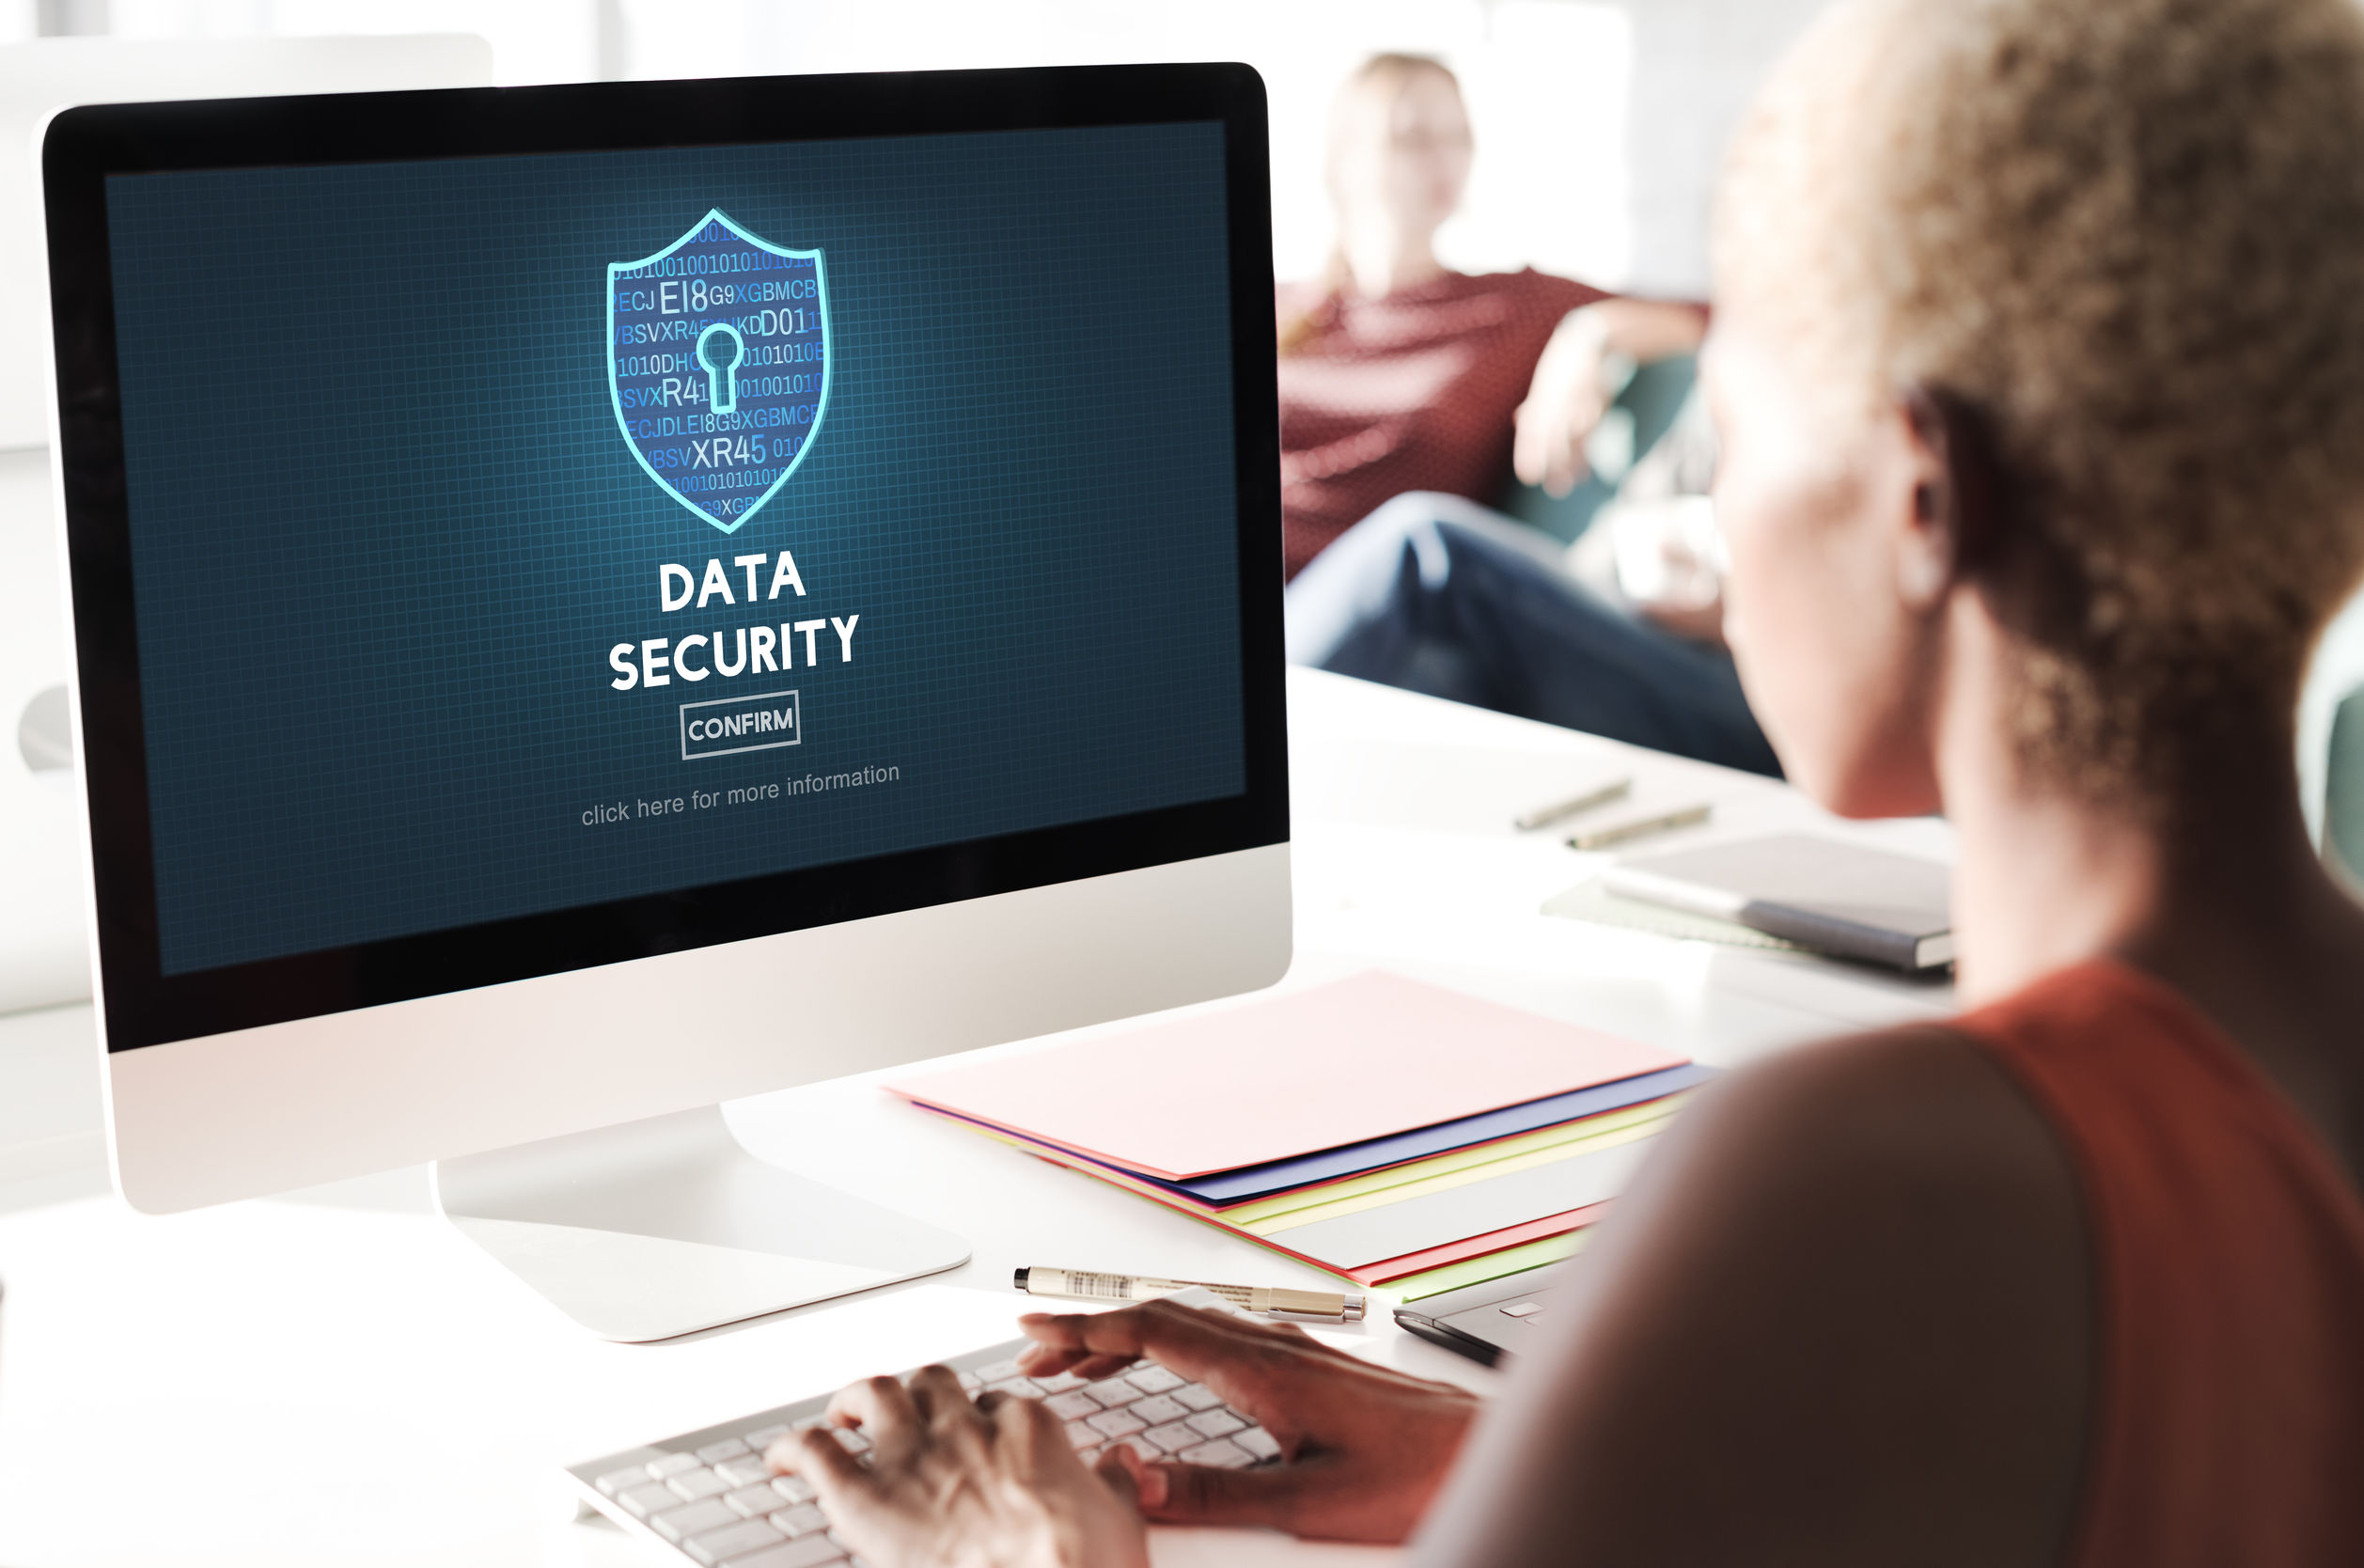 Data Security Privacy Online Security Protection Concept